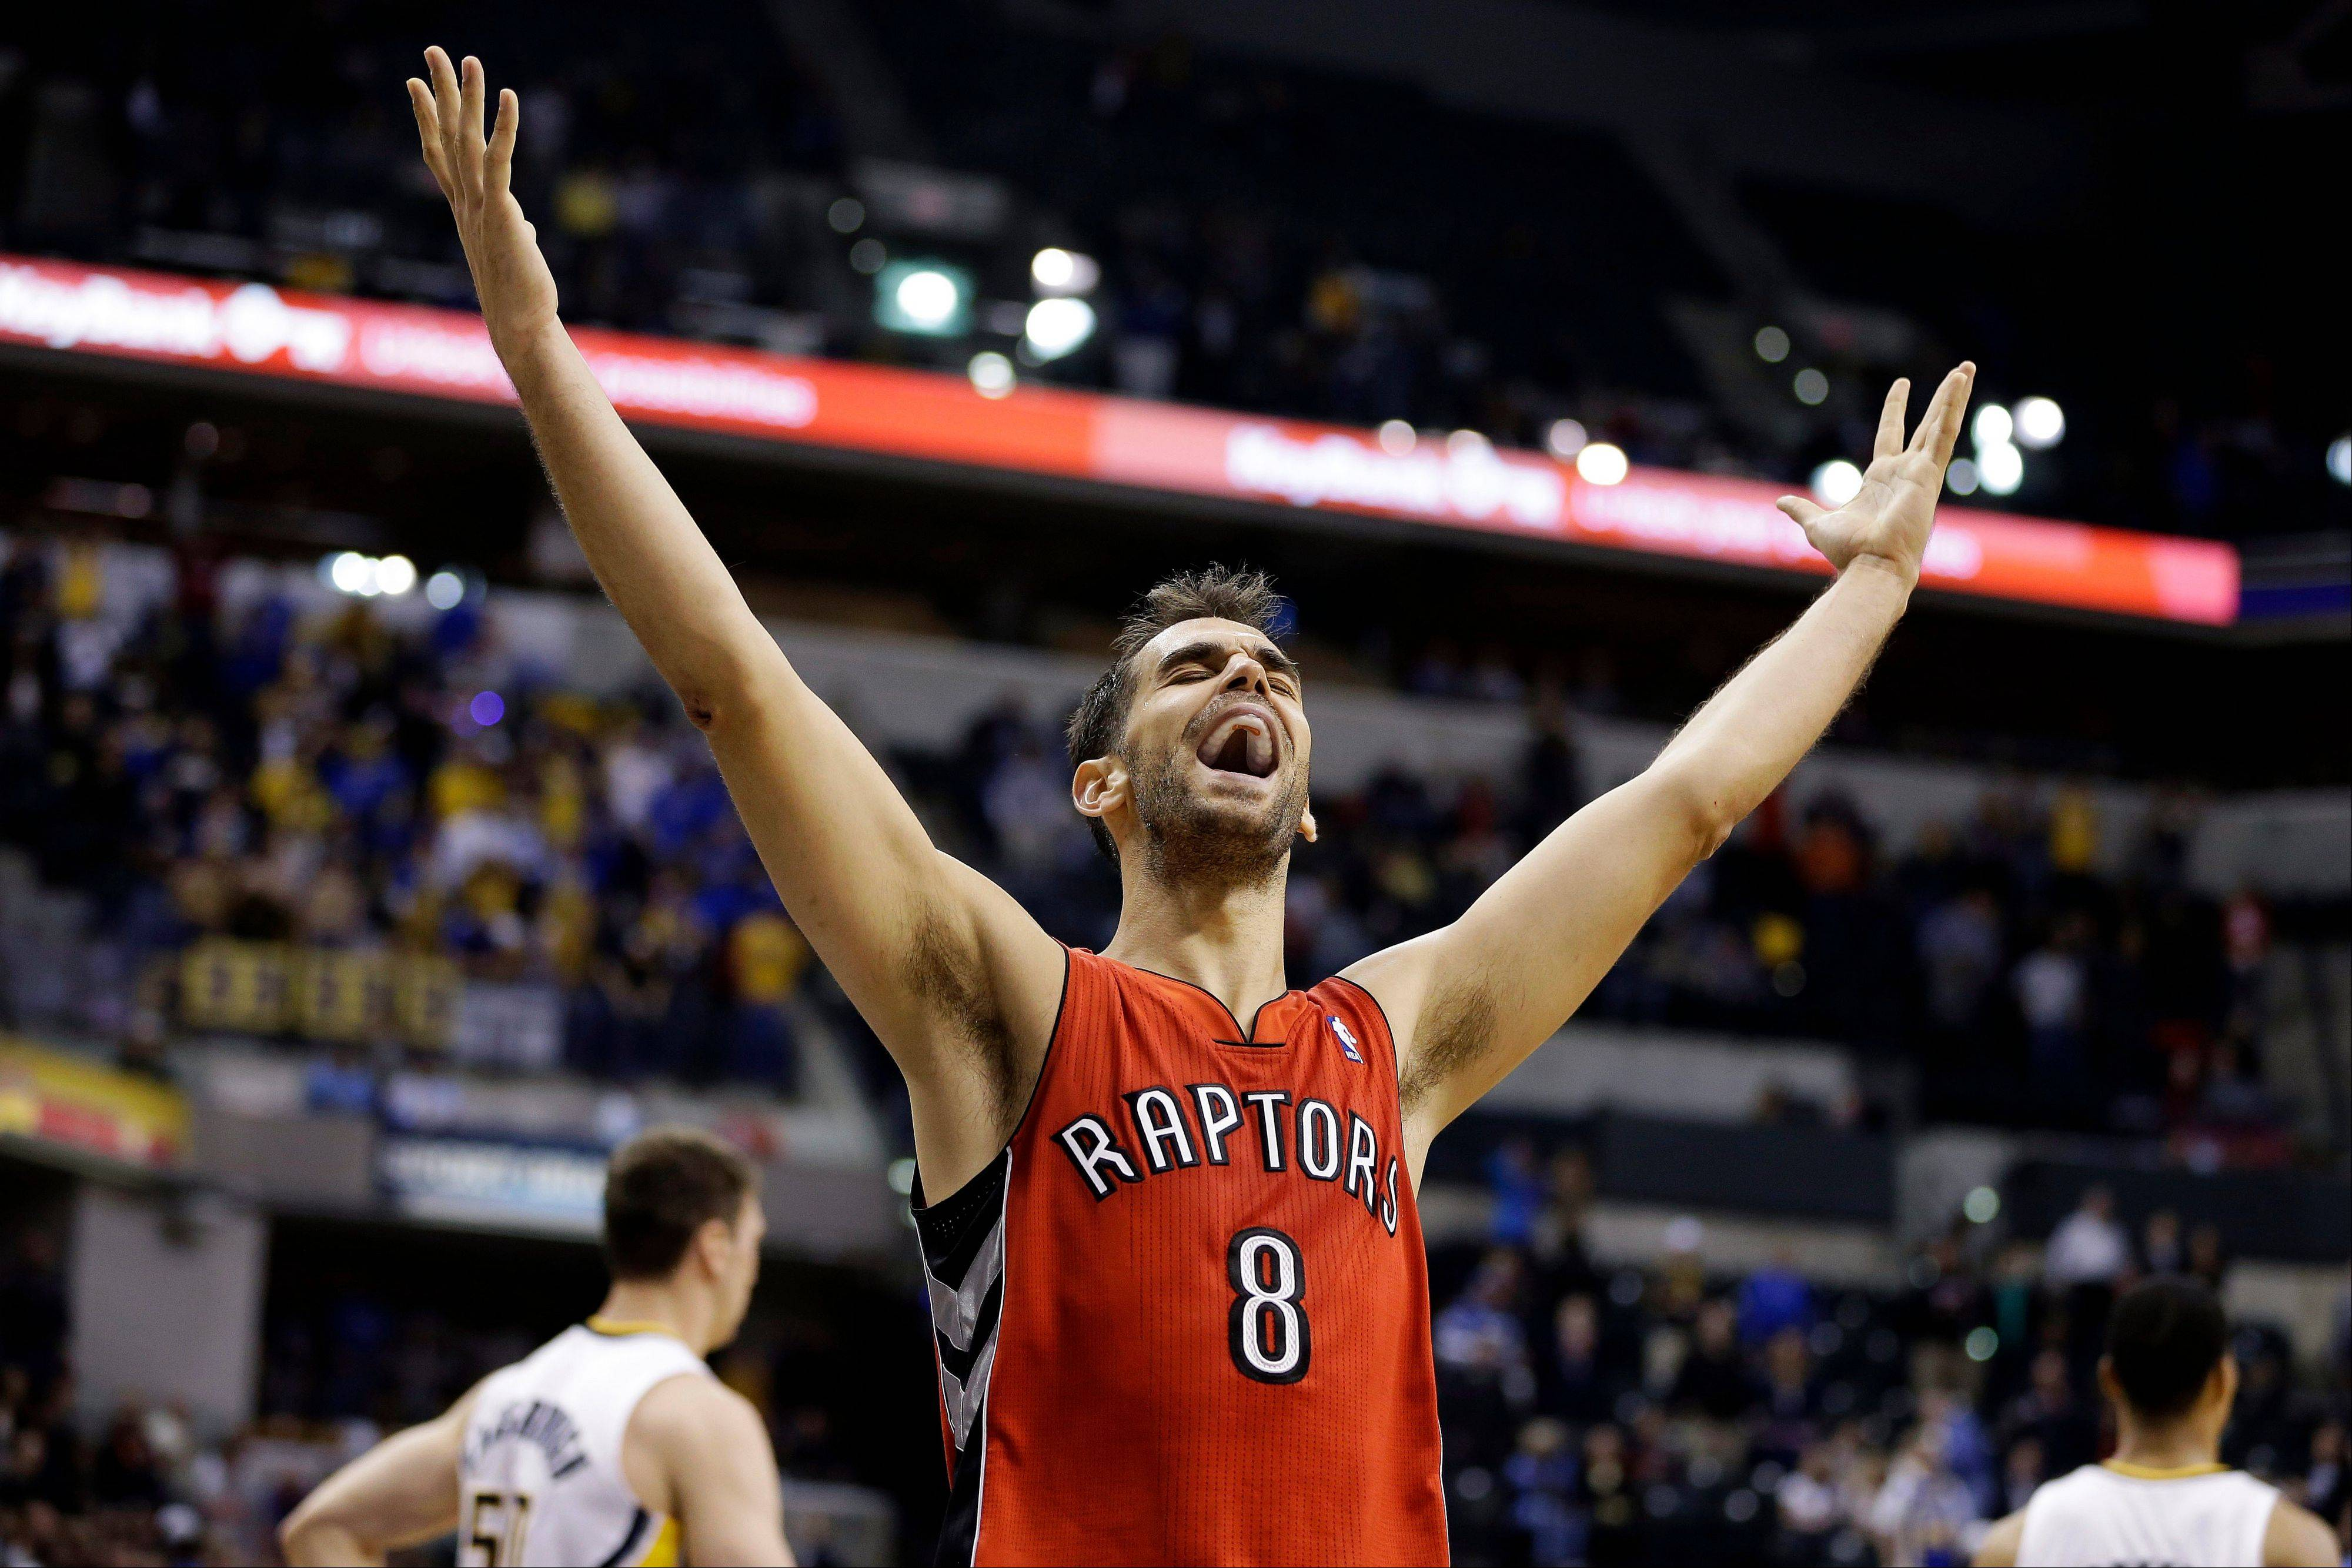 The Toronto Raptors' Jose Calderon reacts Tuesday after their 74-72 win over the Indiana Pacers in Indianapolis.